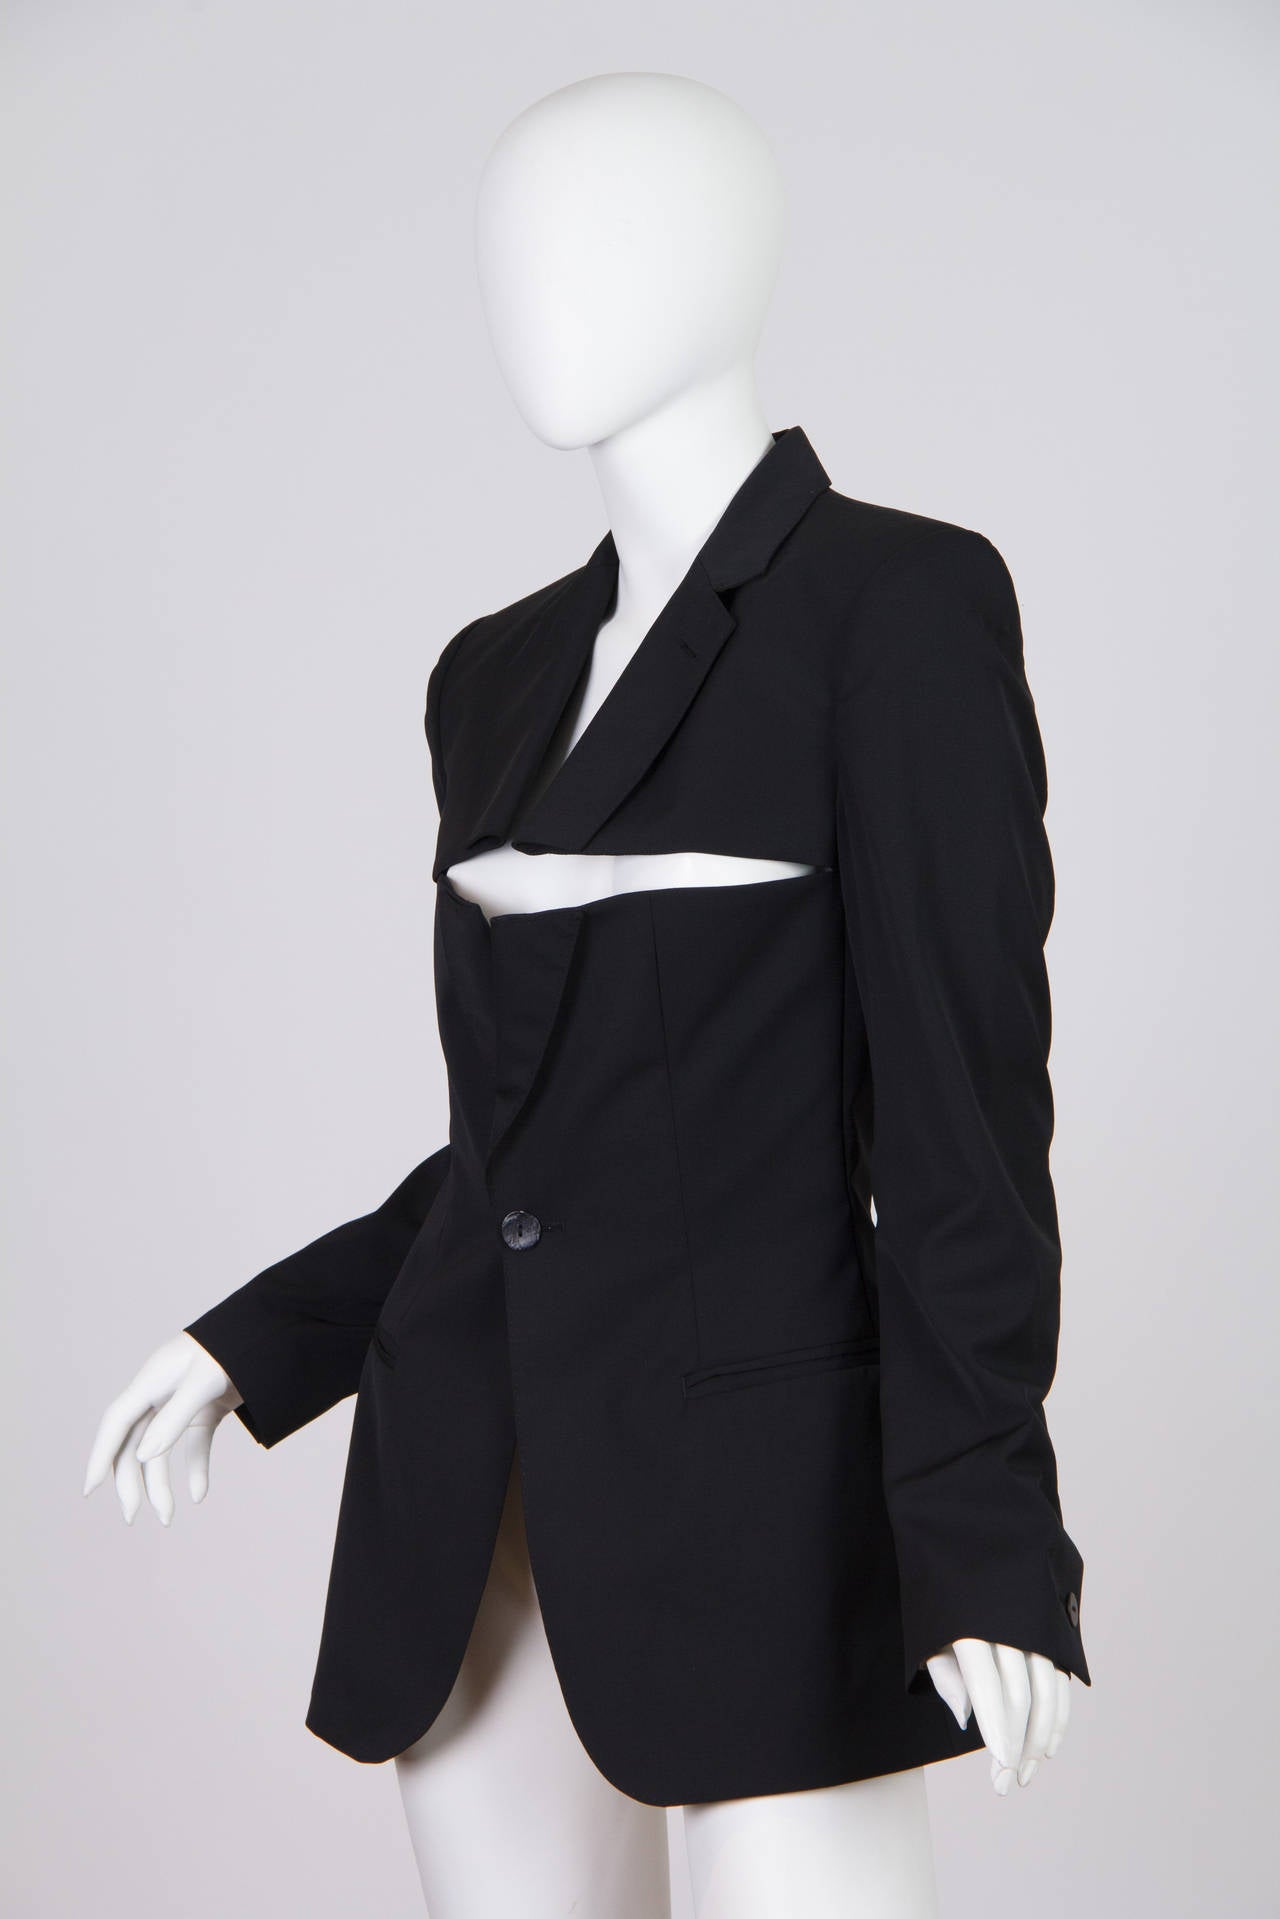 Jean Paul Gaultier Slashed Blazer 7